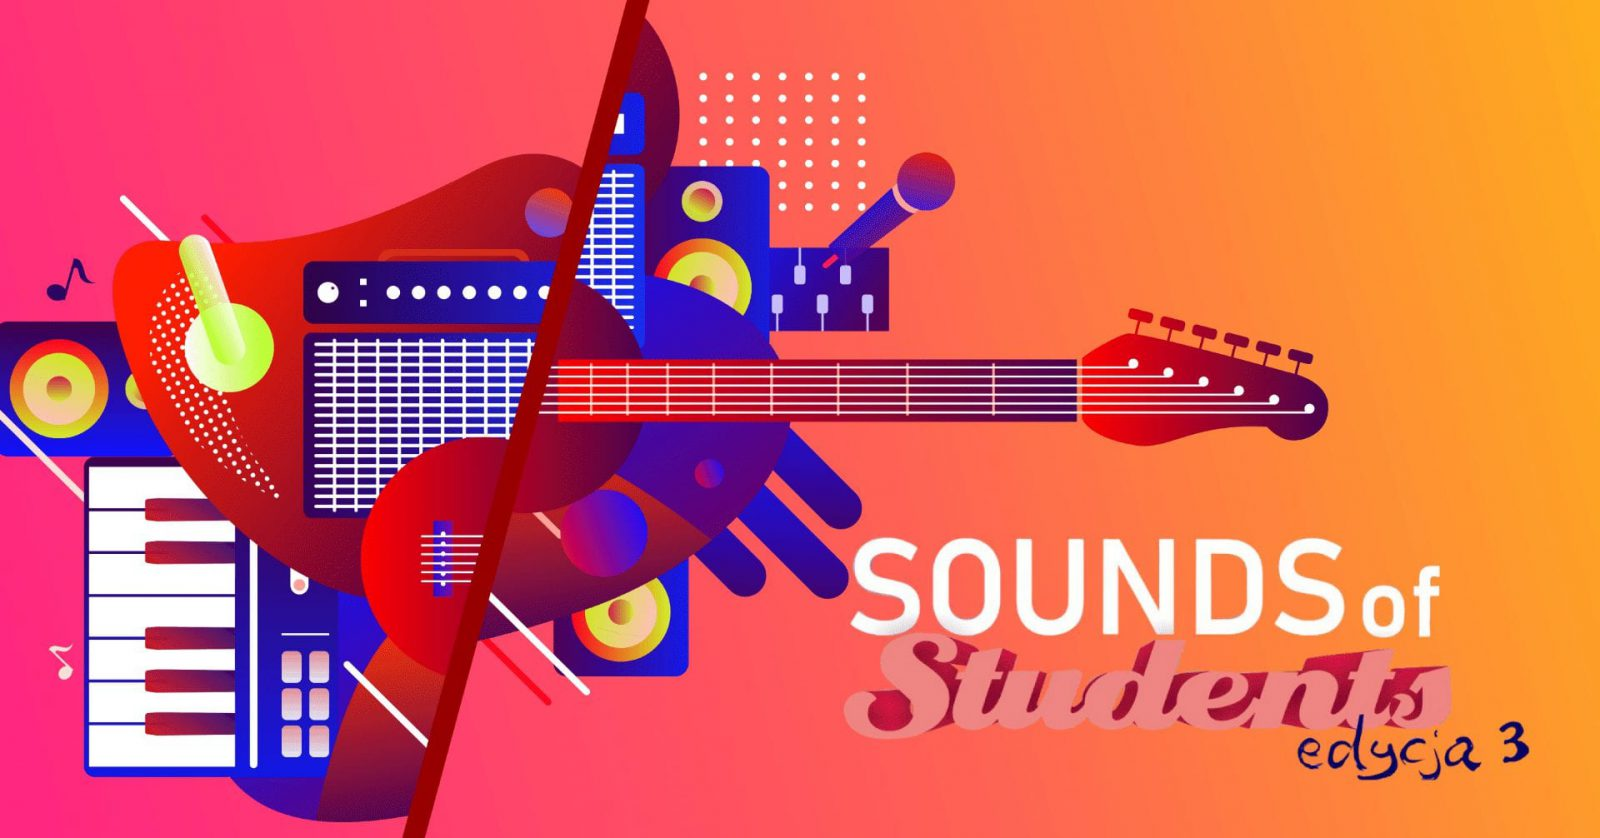 3. edycja koncertu Sounds of Students za nami!